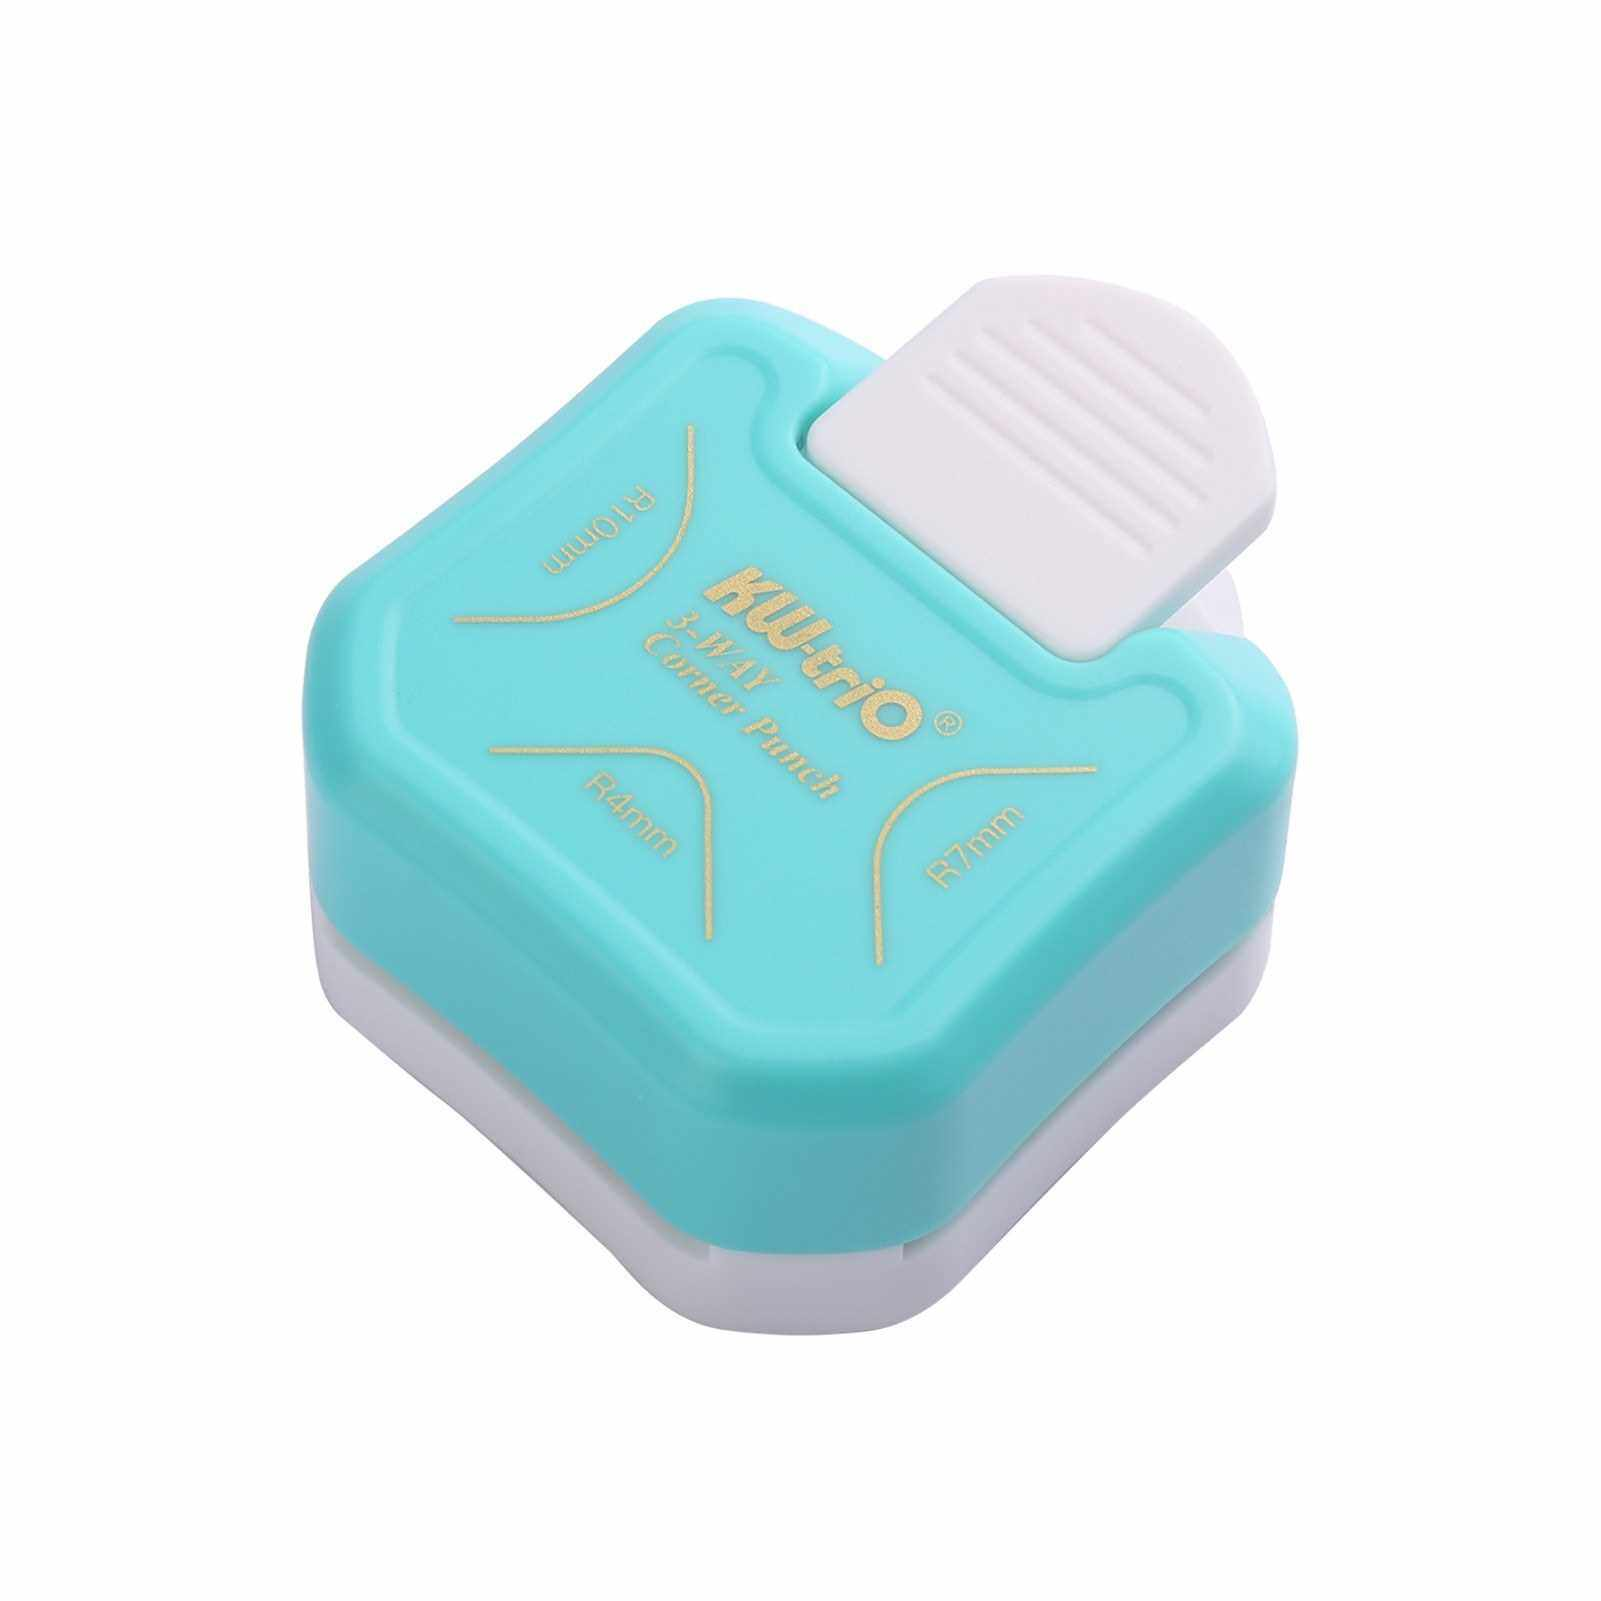 KW-trio 3-in-1 Corner Rounder Punch R4/R7/R10mm Round Corner Trimmer Cutter for Card Photo Paper Laminating Pouches (Blue)